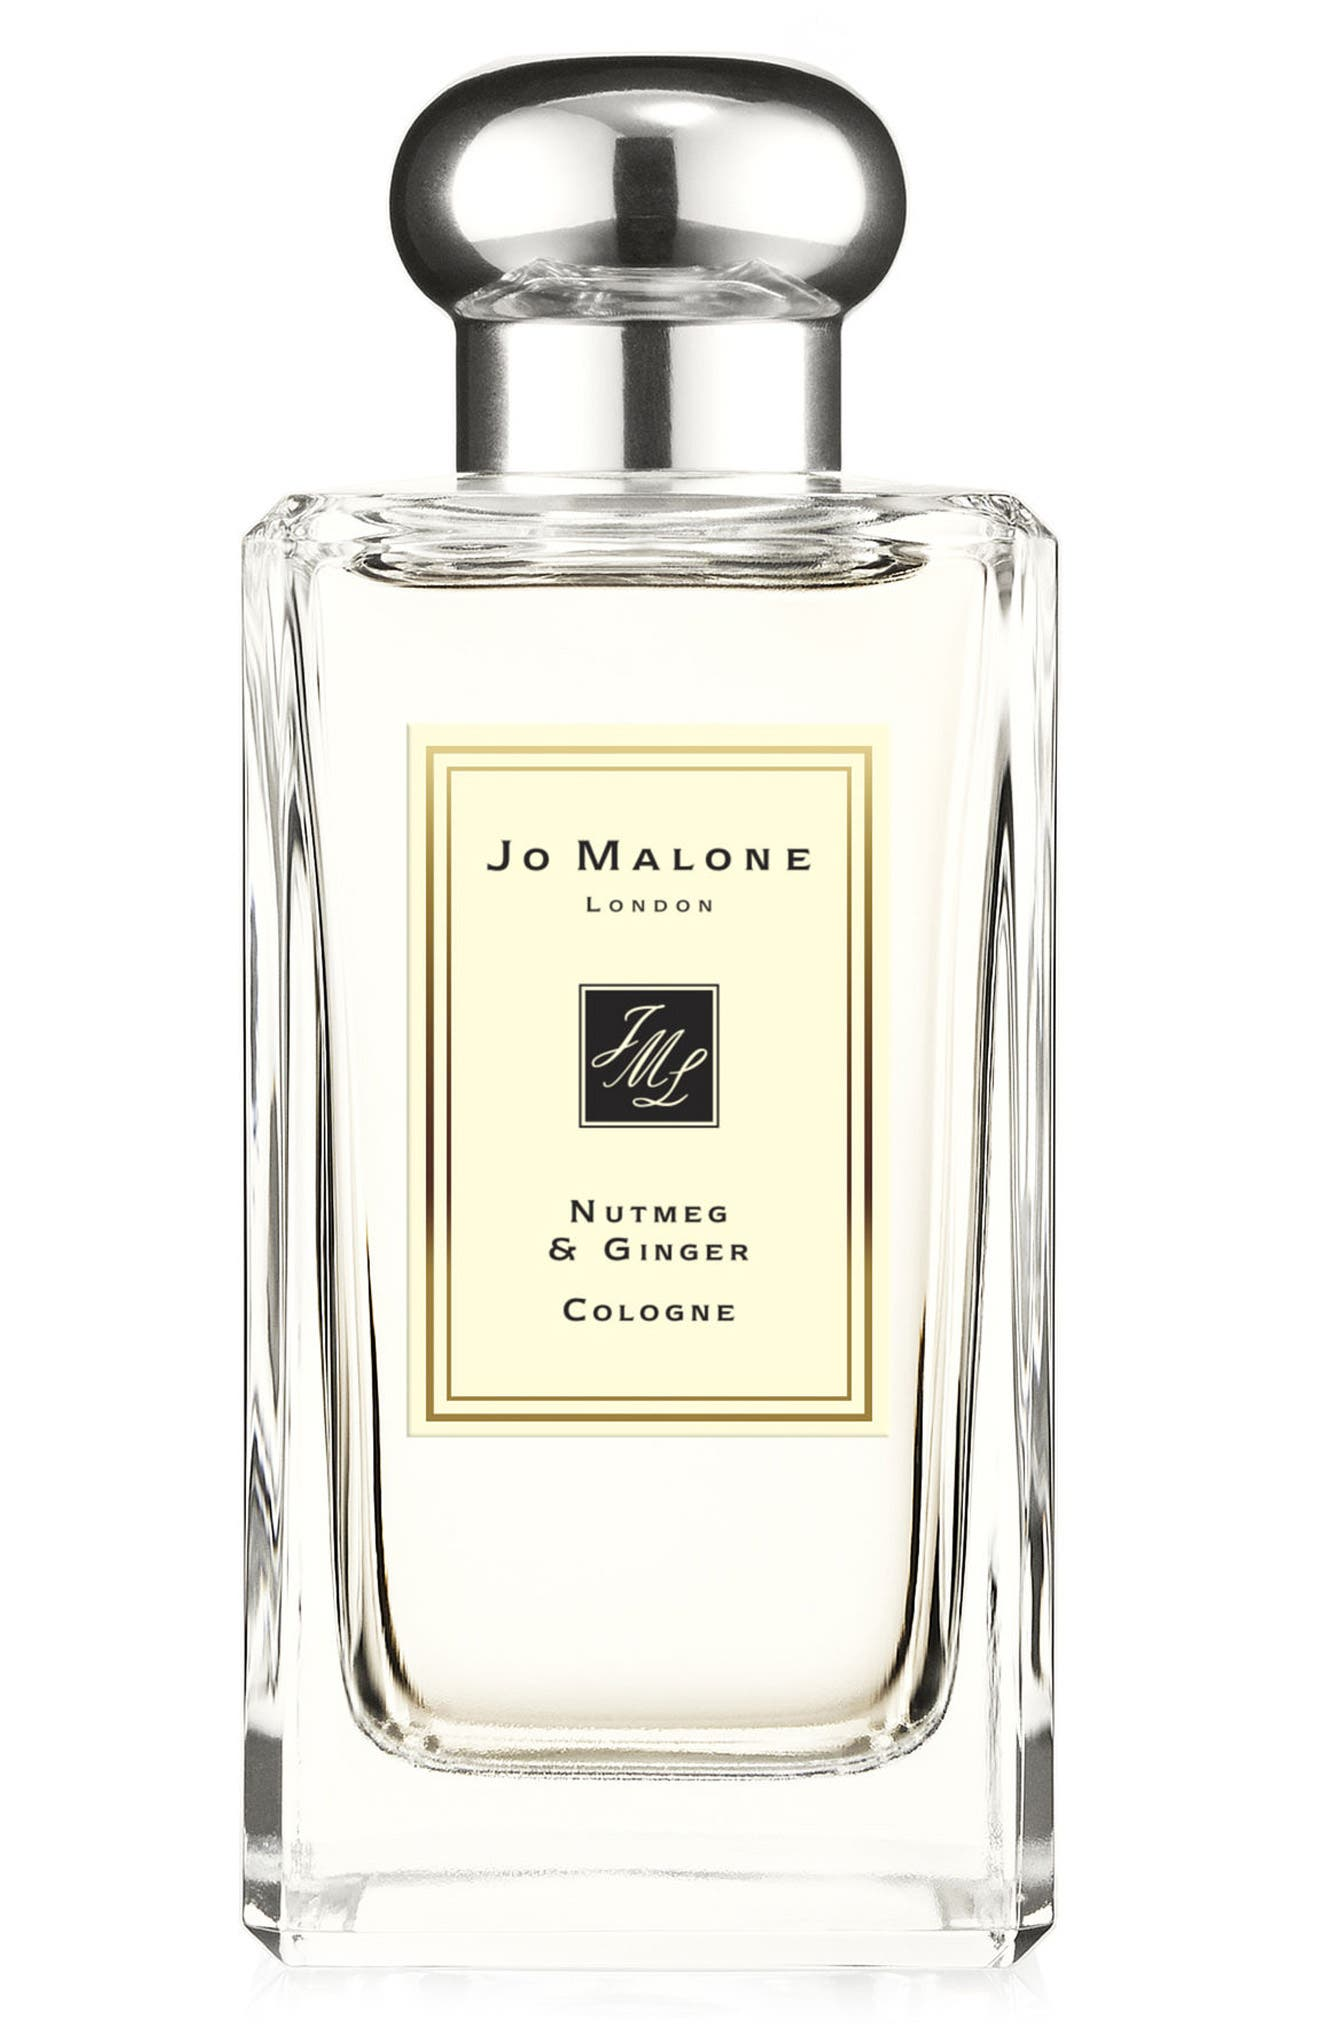 Alternate Image 1 Selected - Jo Malone London™ 'Nutmeg & Ginger' Cologne (3.4 oz.)